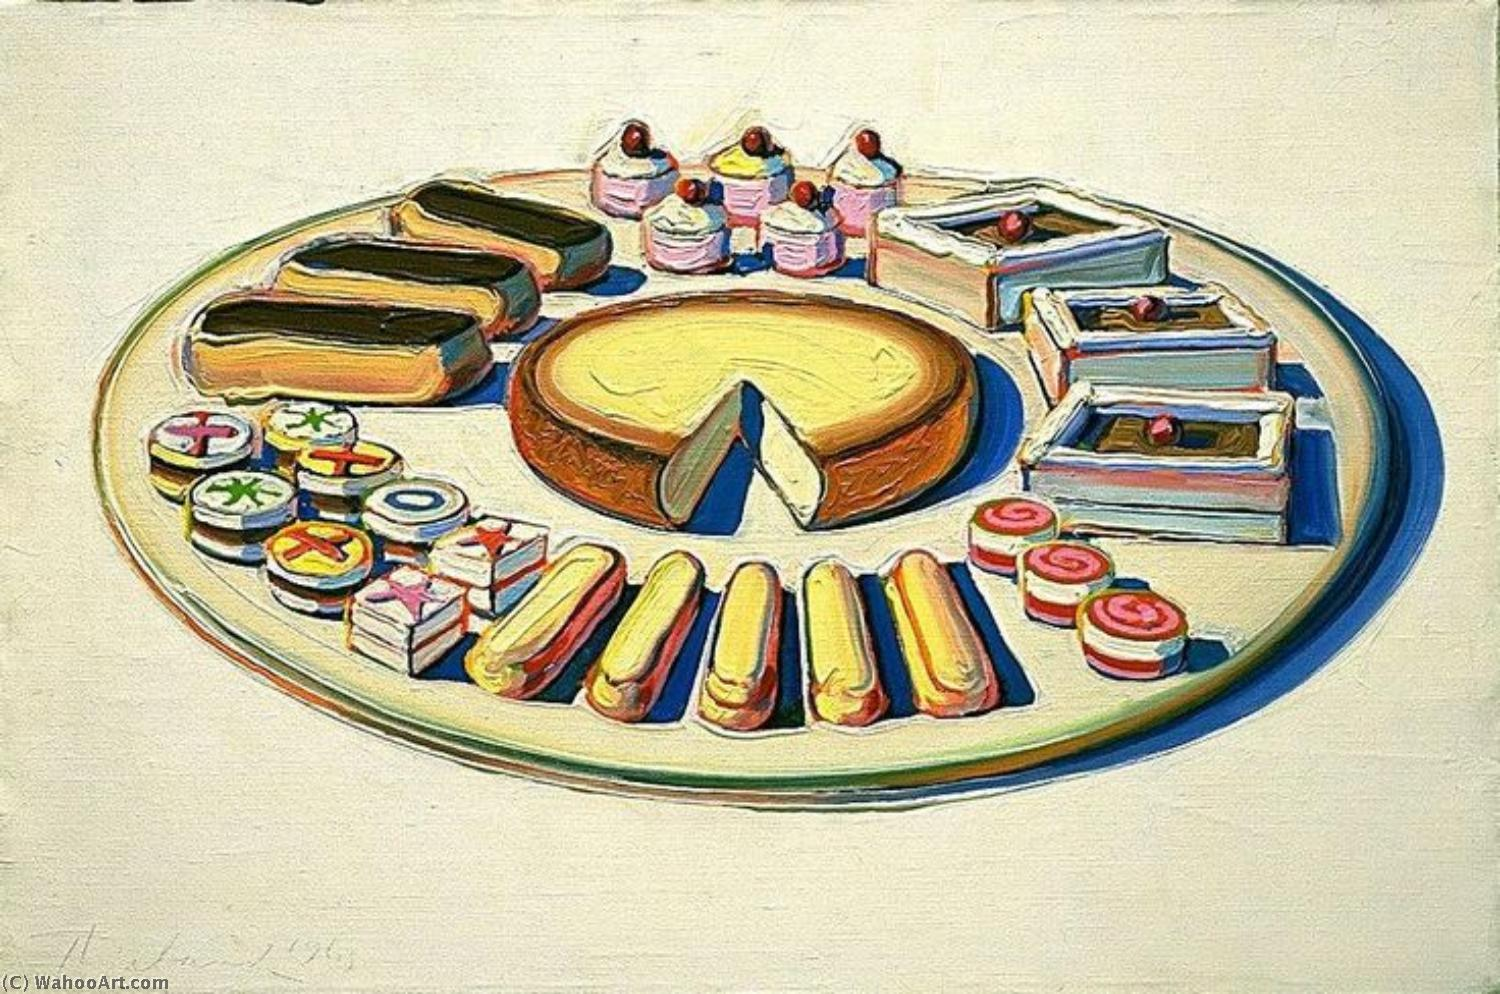 | arte pop por Wayne Thiebaud | Most-Famous-Paintings.com